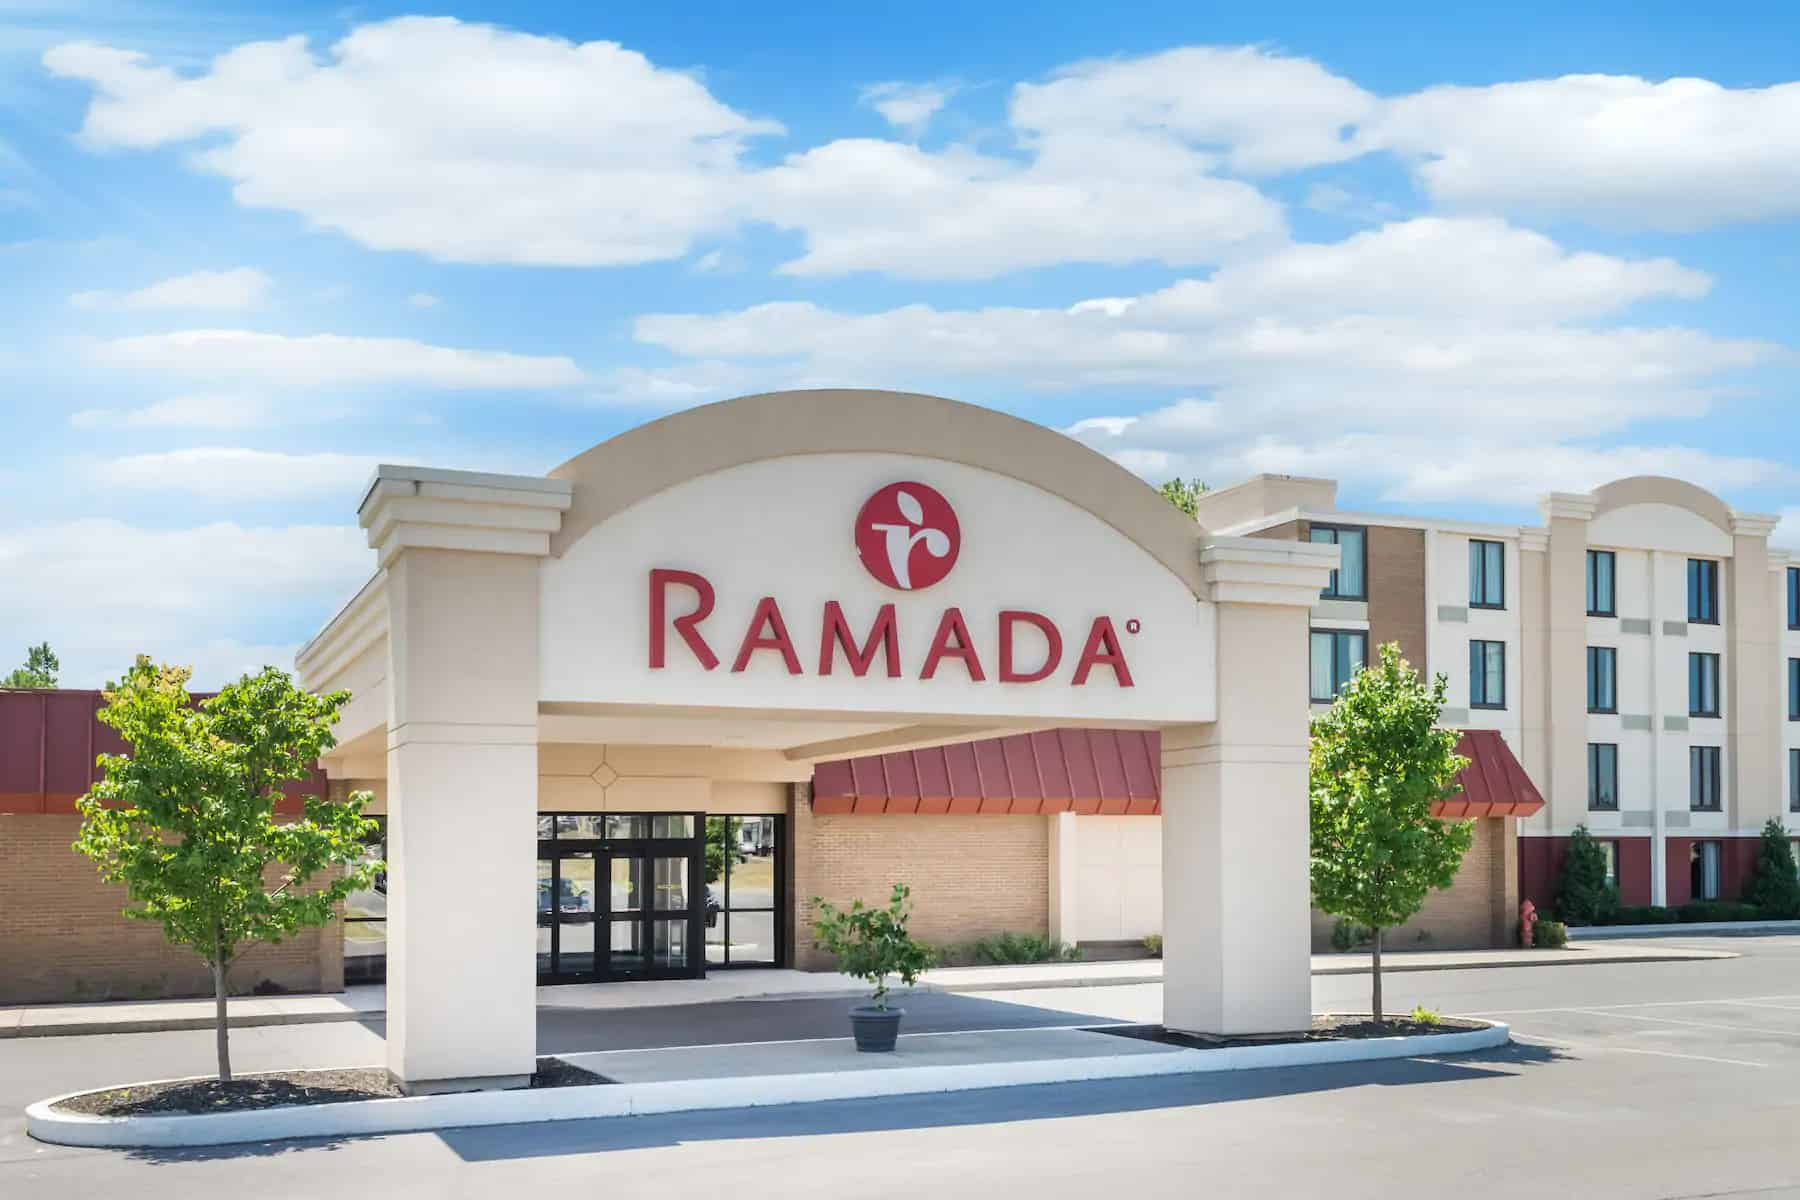 Ramada Watertown Front Entrance